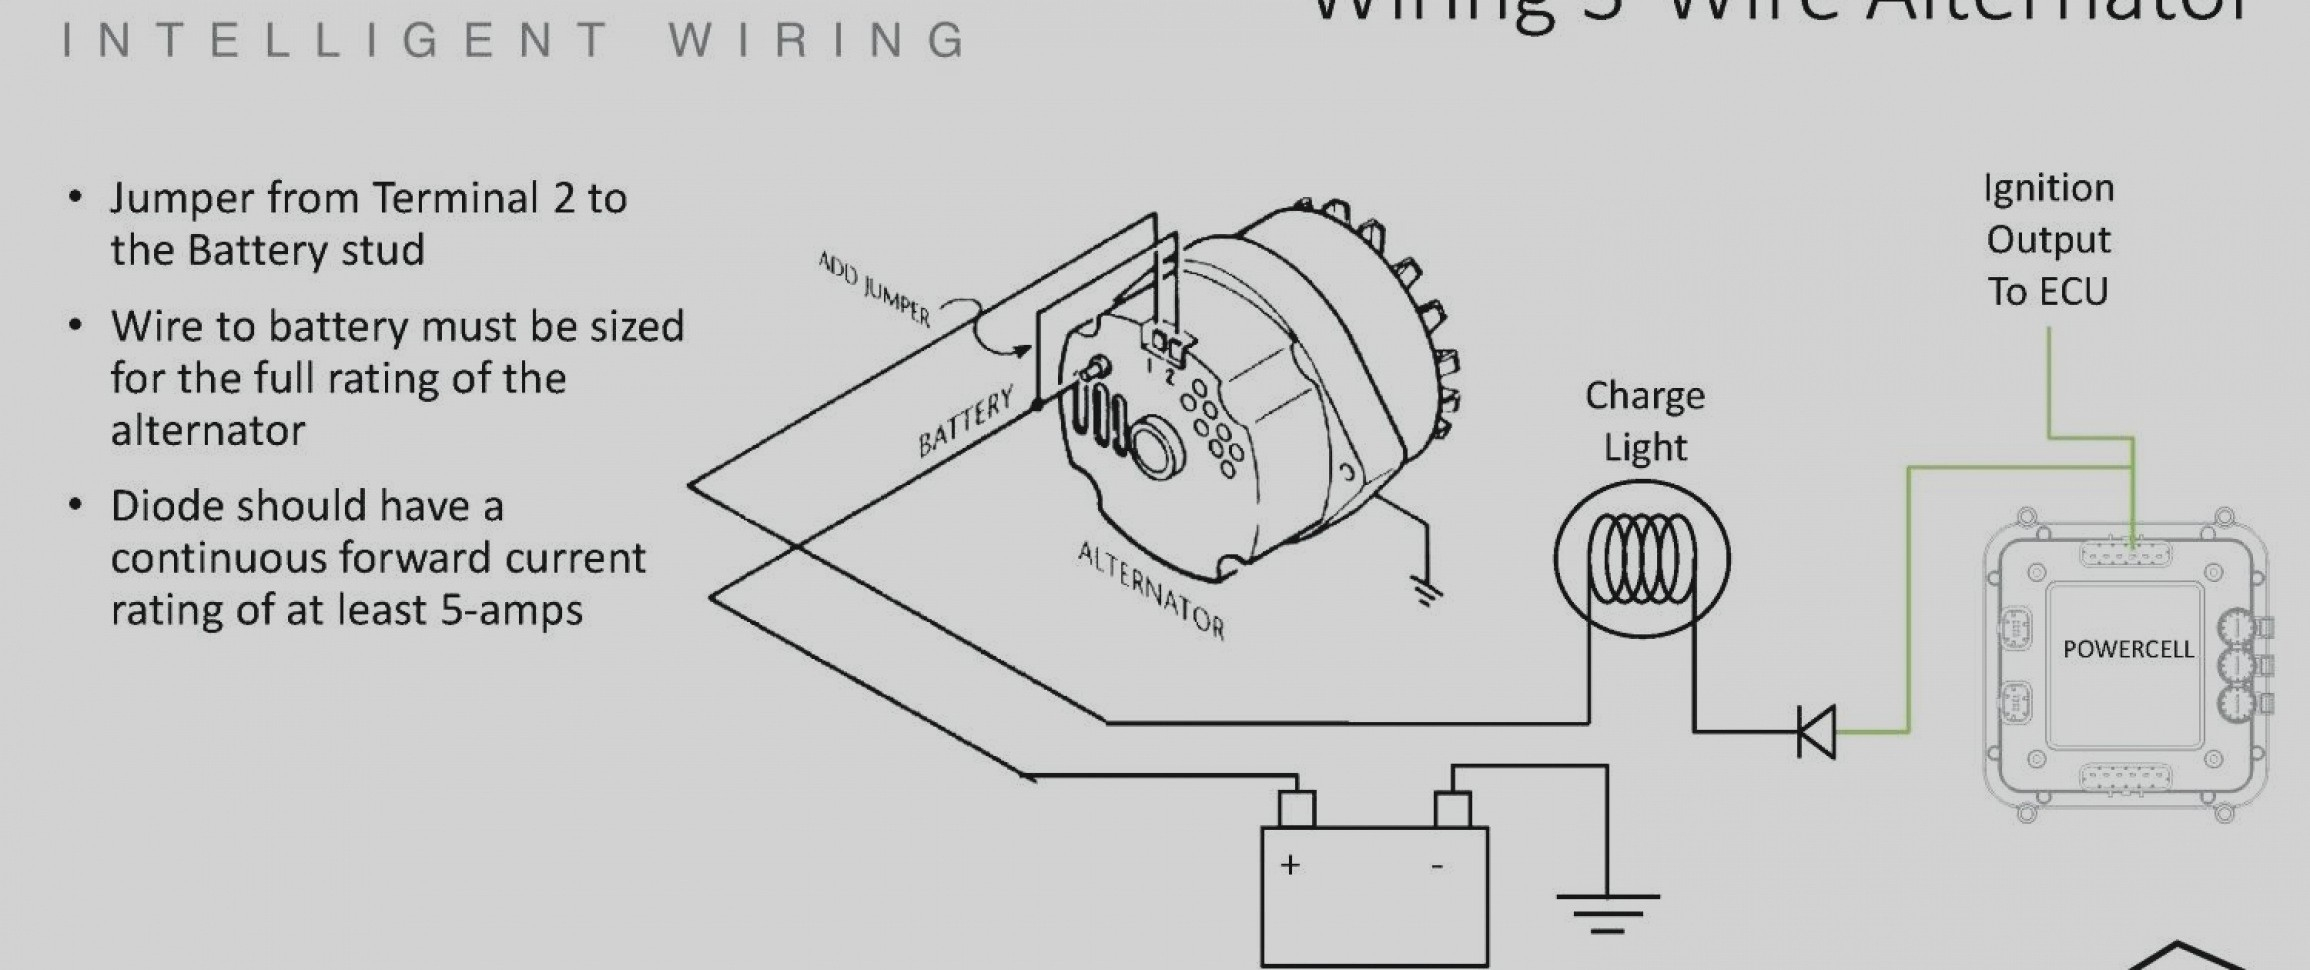 Basic Gm Alternator Wiring Diagram